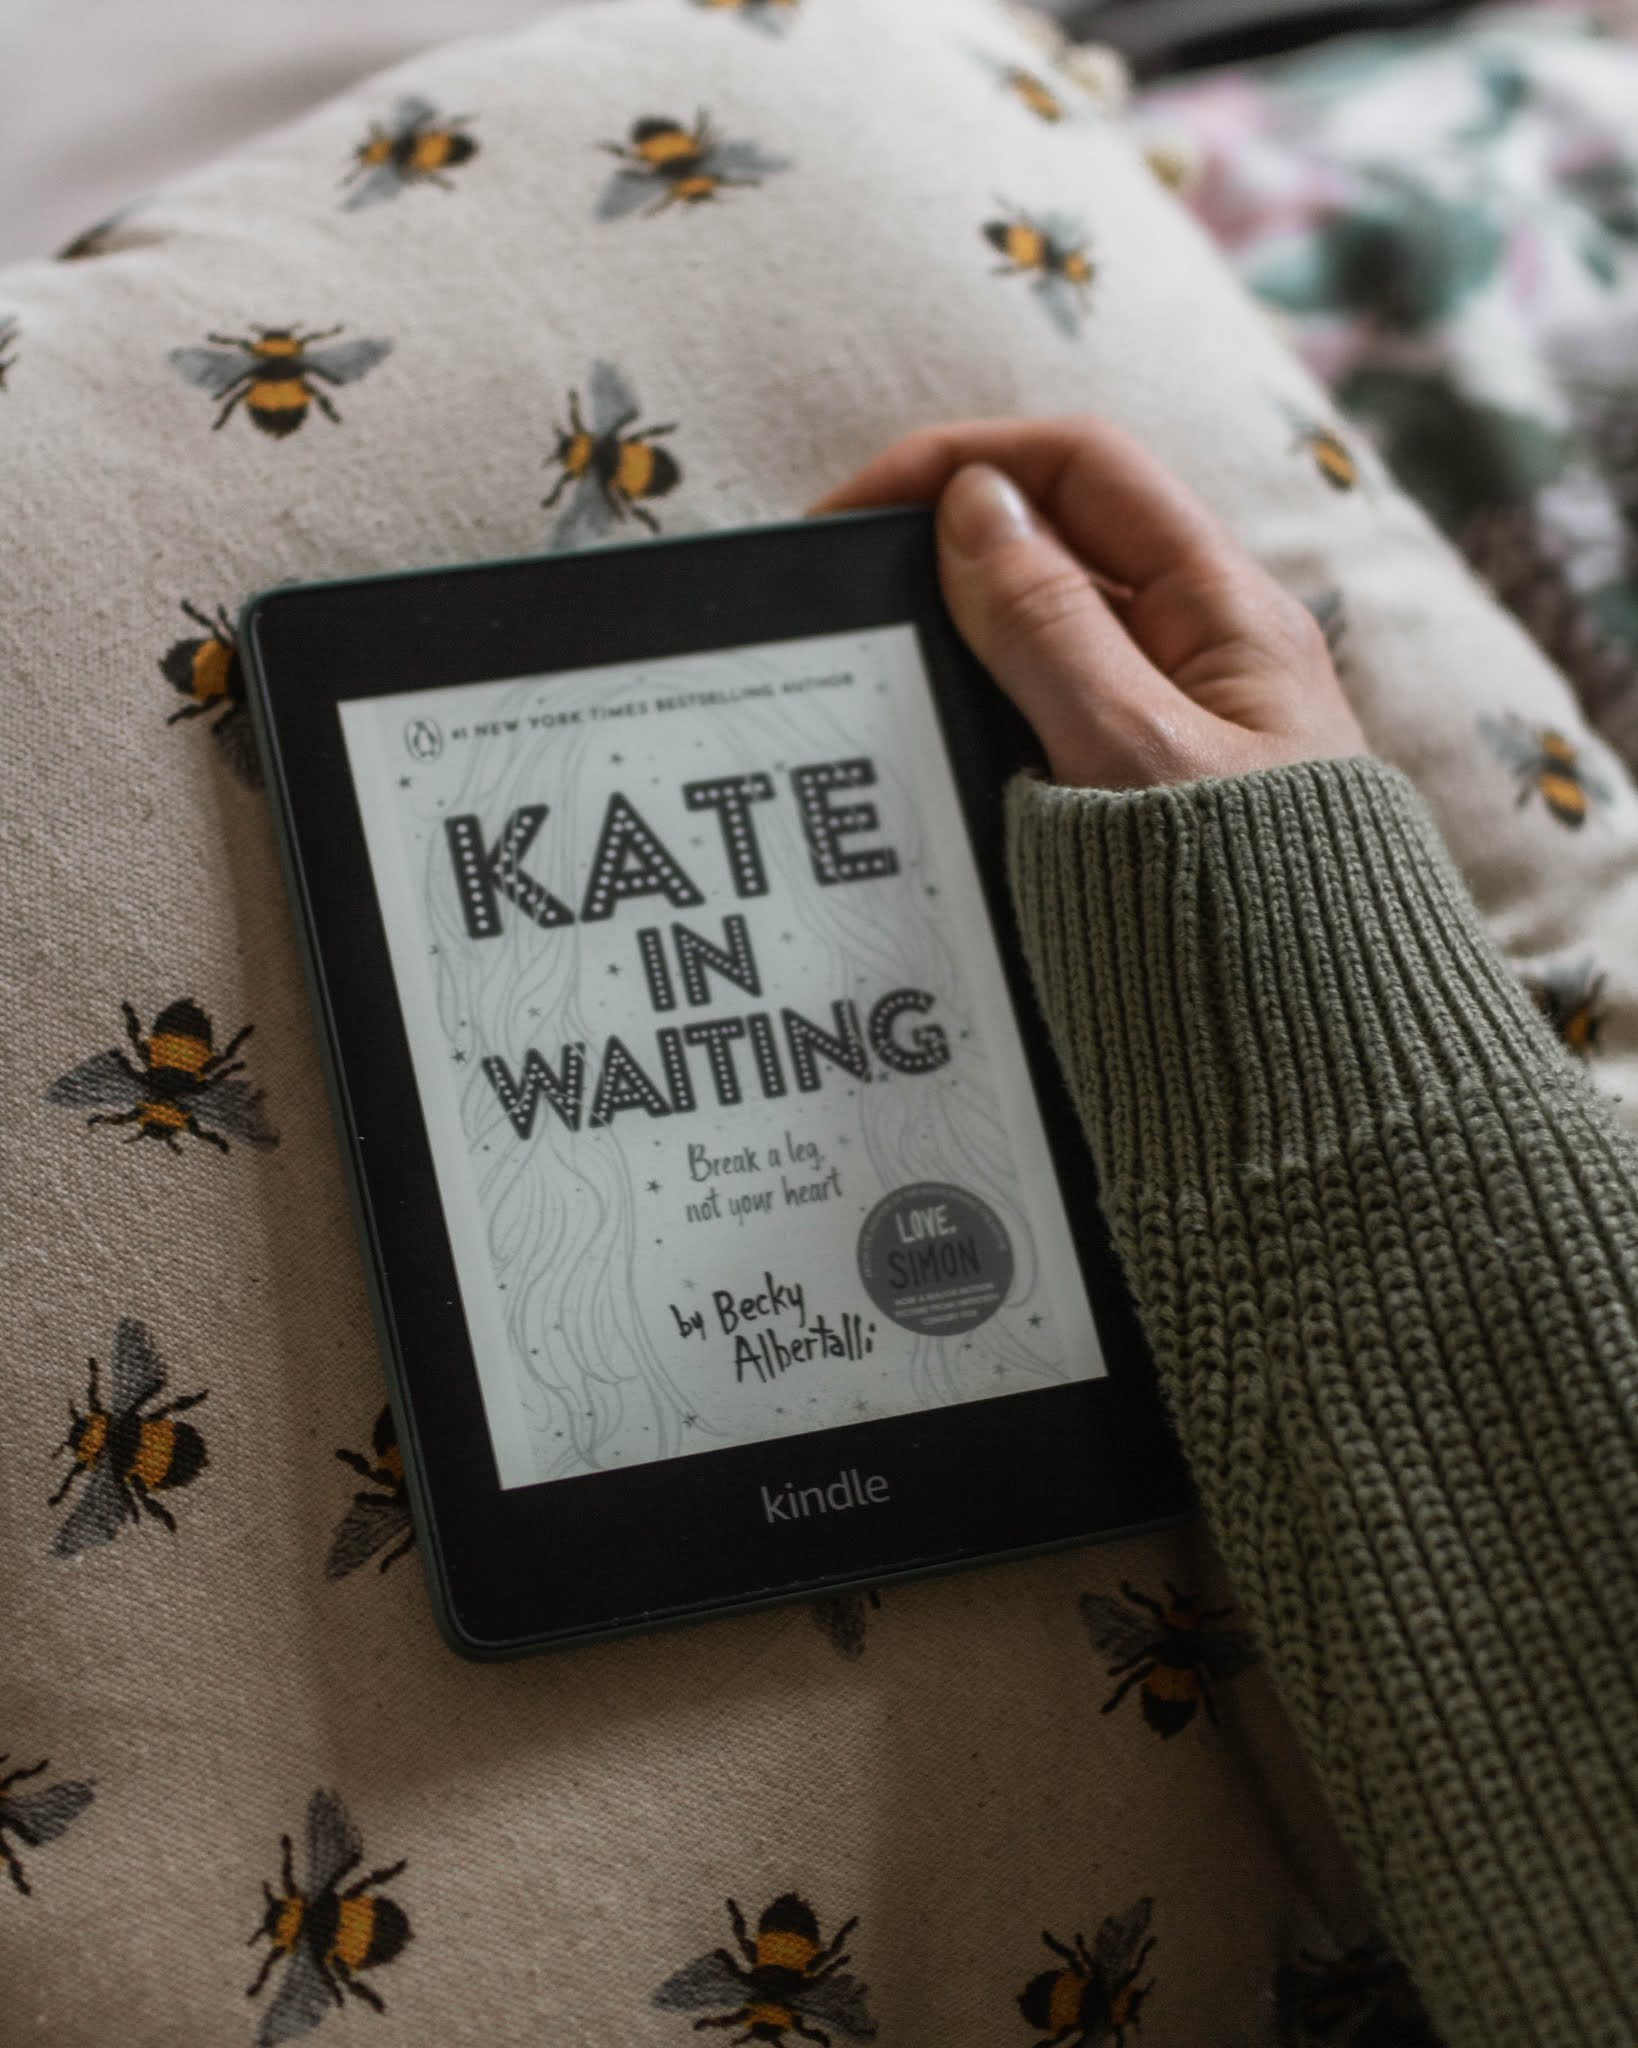 kindle paperwhite displaying kate in waiting by becky albertalli cover sitting on bee patterned cushion